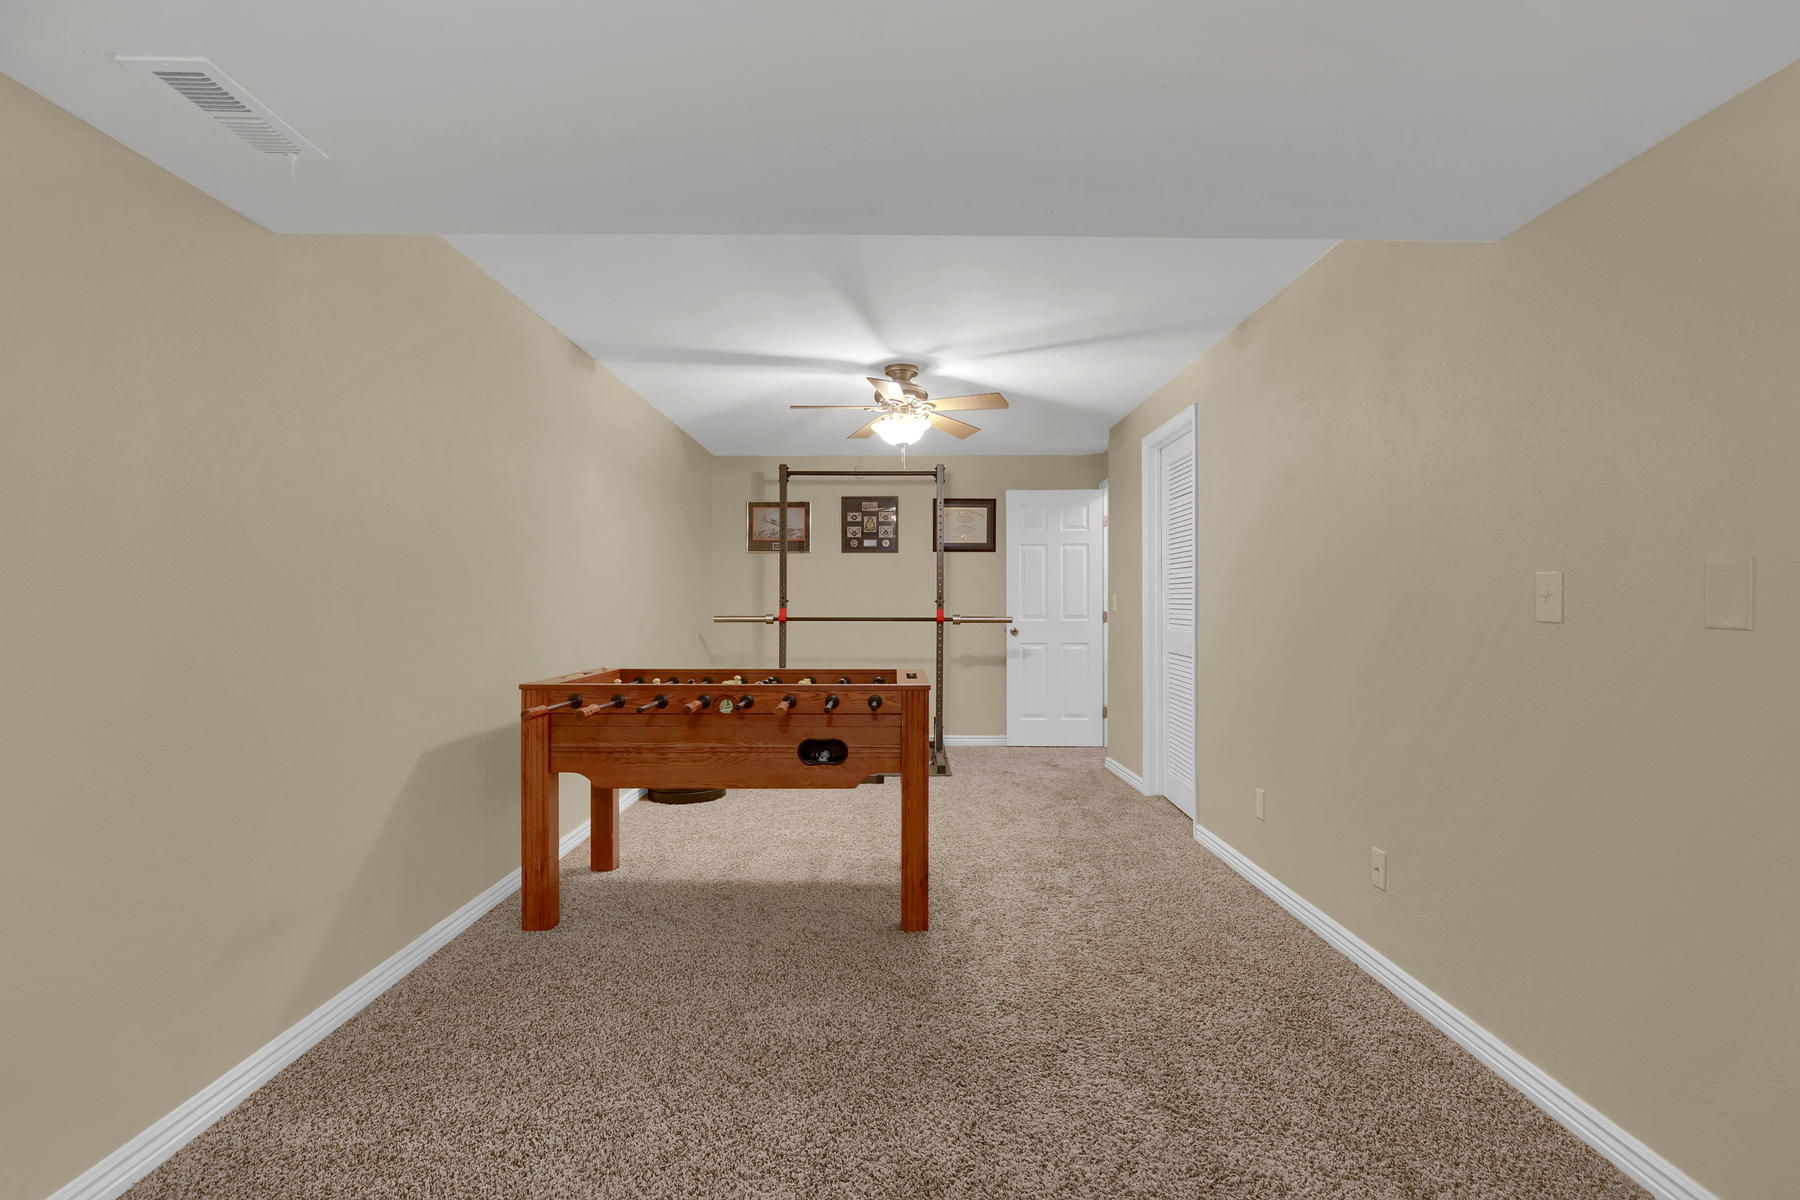 Additional photo for property listing at BEST OF BOTH WORLDS – NEWER HOME DOWNTOWN! 515 E Columbia St Colorado Springs, Colorado 80907 United States